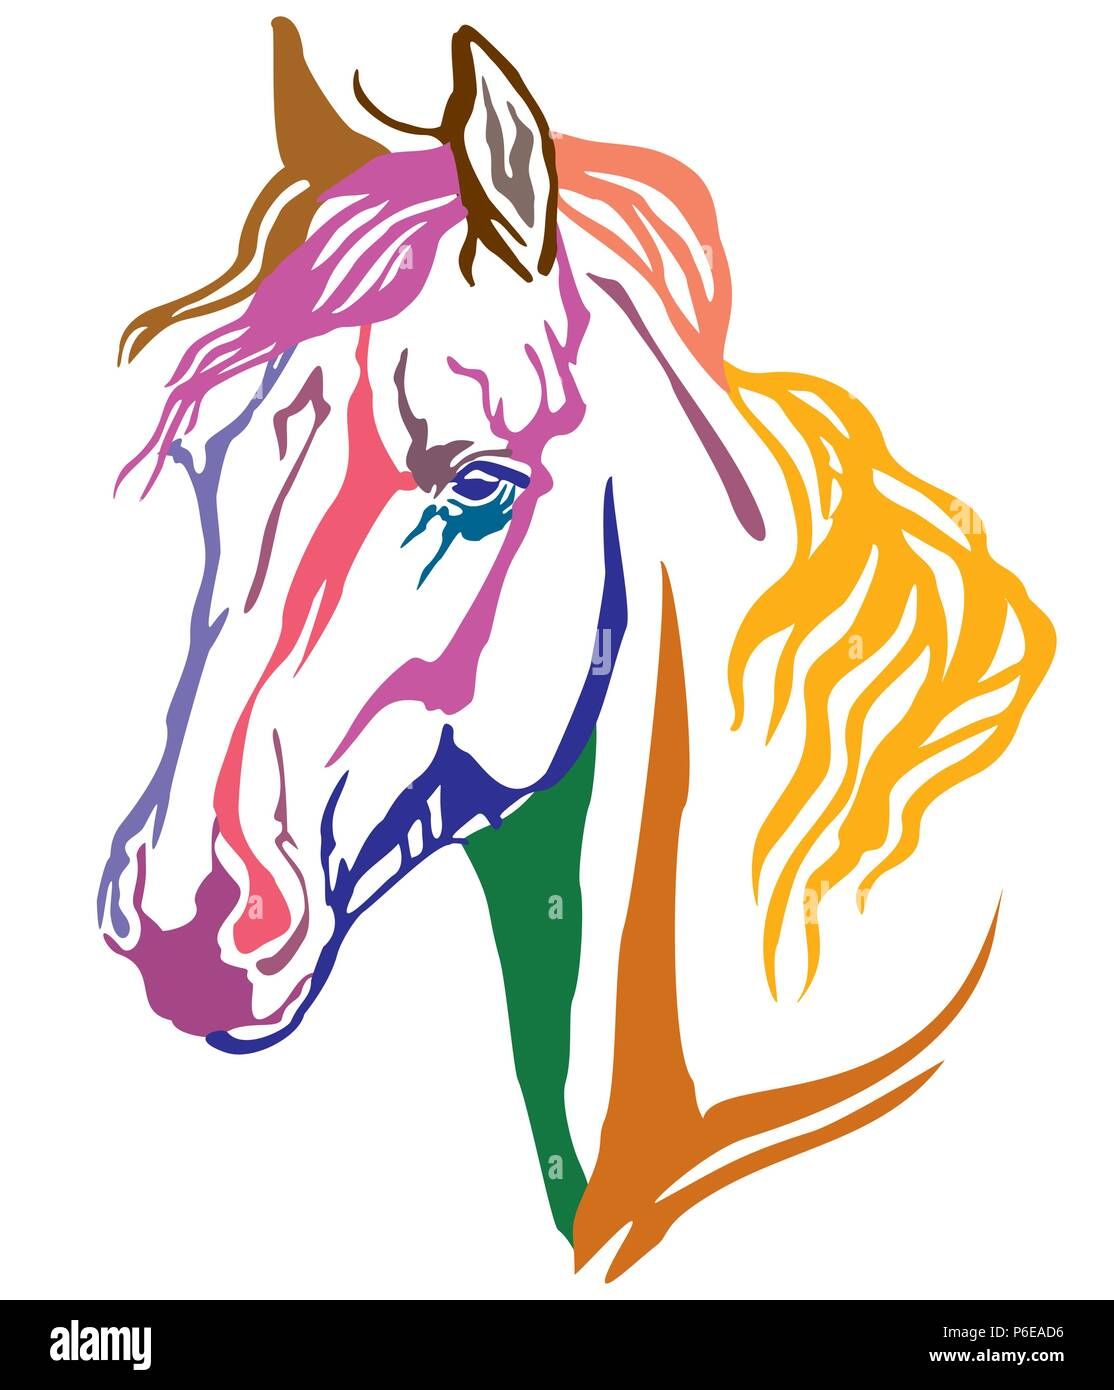 Colorful Decorative Portrait Of Arabian Horse Vector Illustration In Different Colors Isolated On White Background Image For Design And Tattoo Stock Vector Image Art Alamy